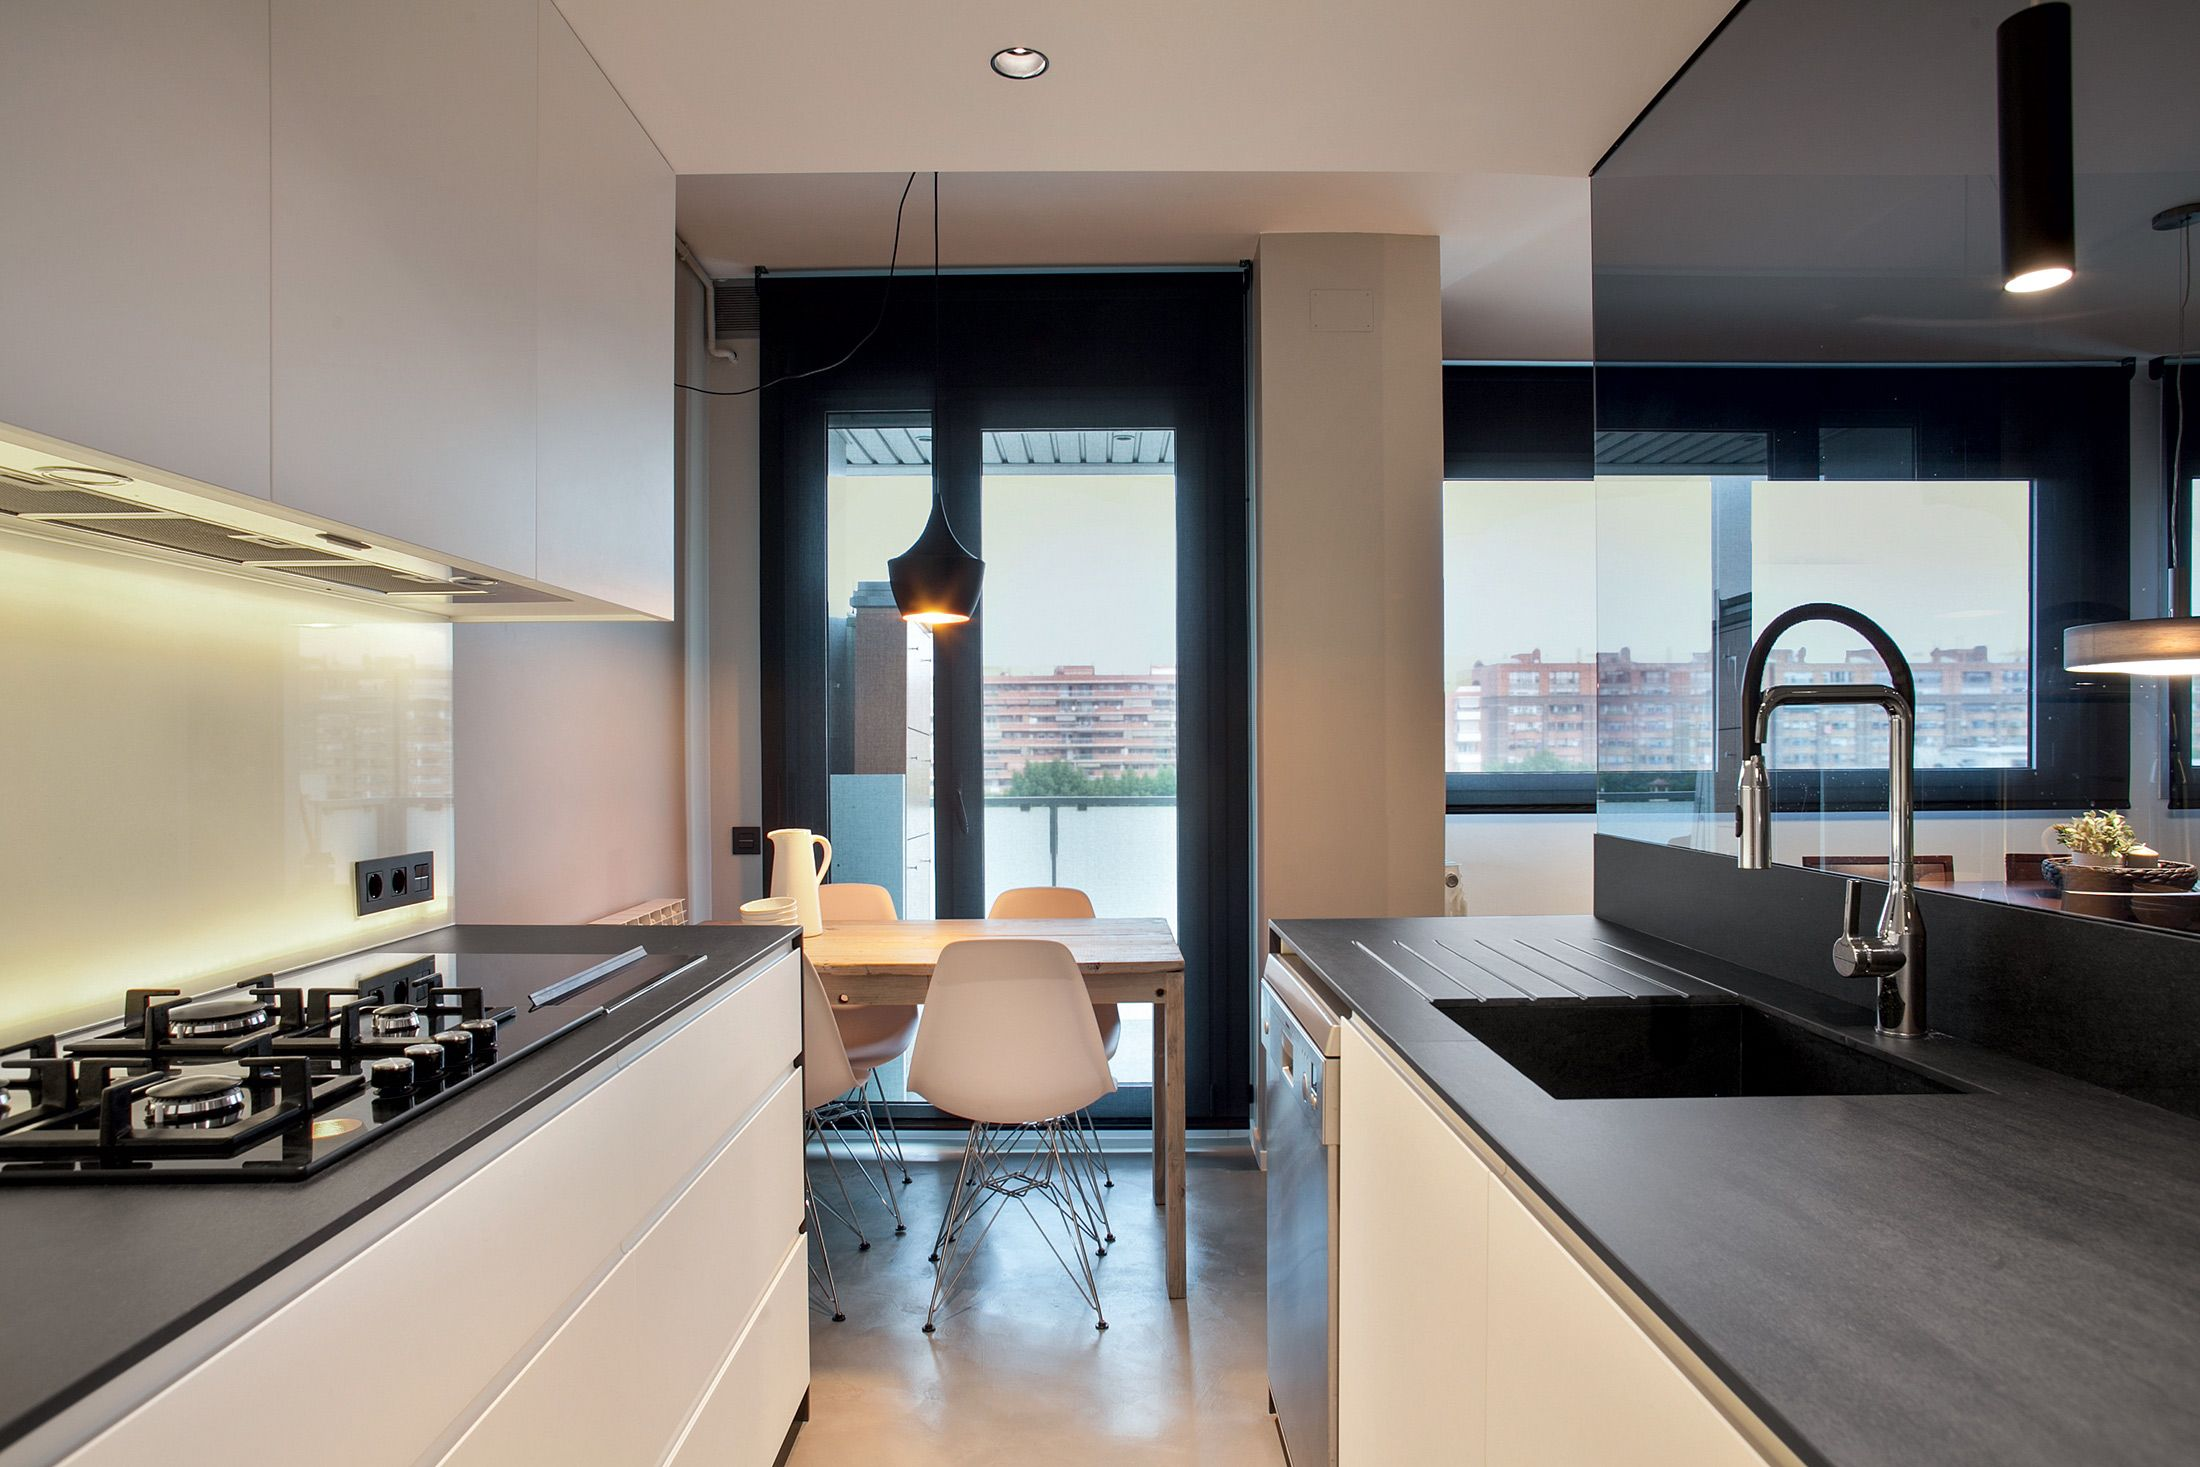 Neolith Basalt Black 12mm Countertops with the Satin Finish. View ...